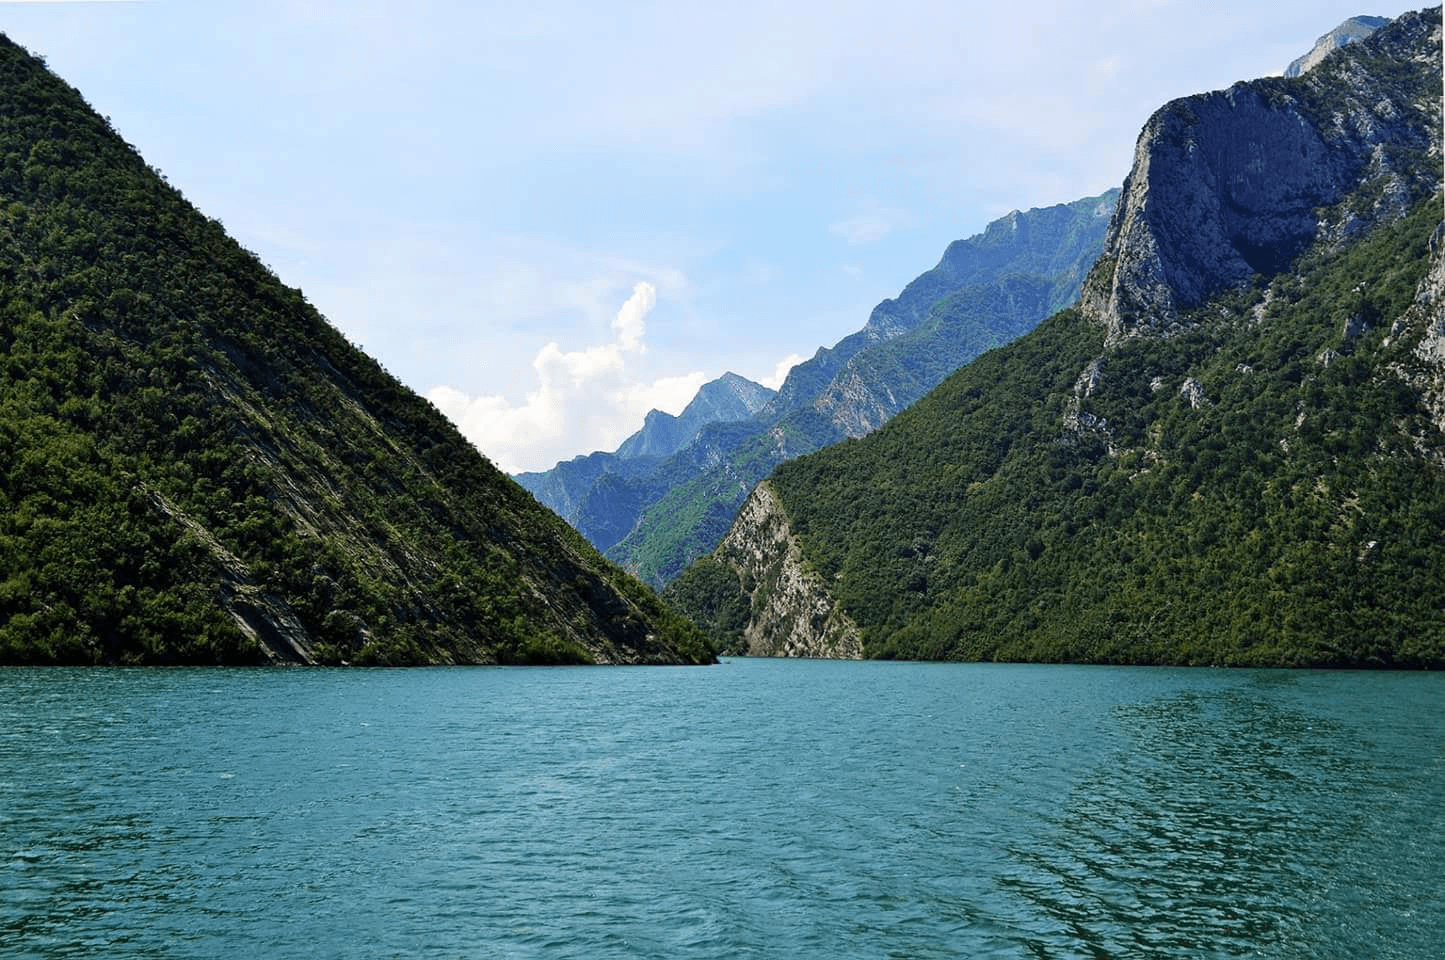 Tour of UNESCO World Heritage Sites in Albania